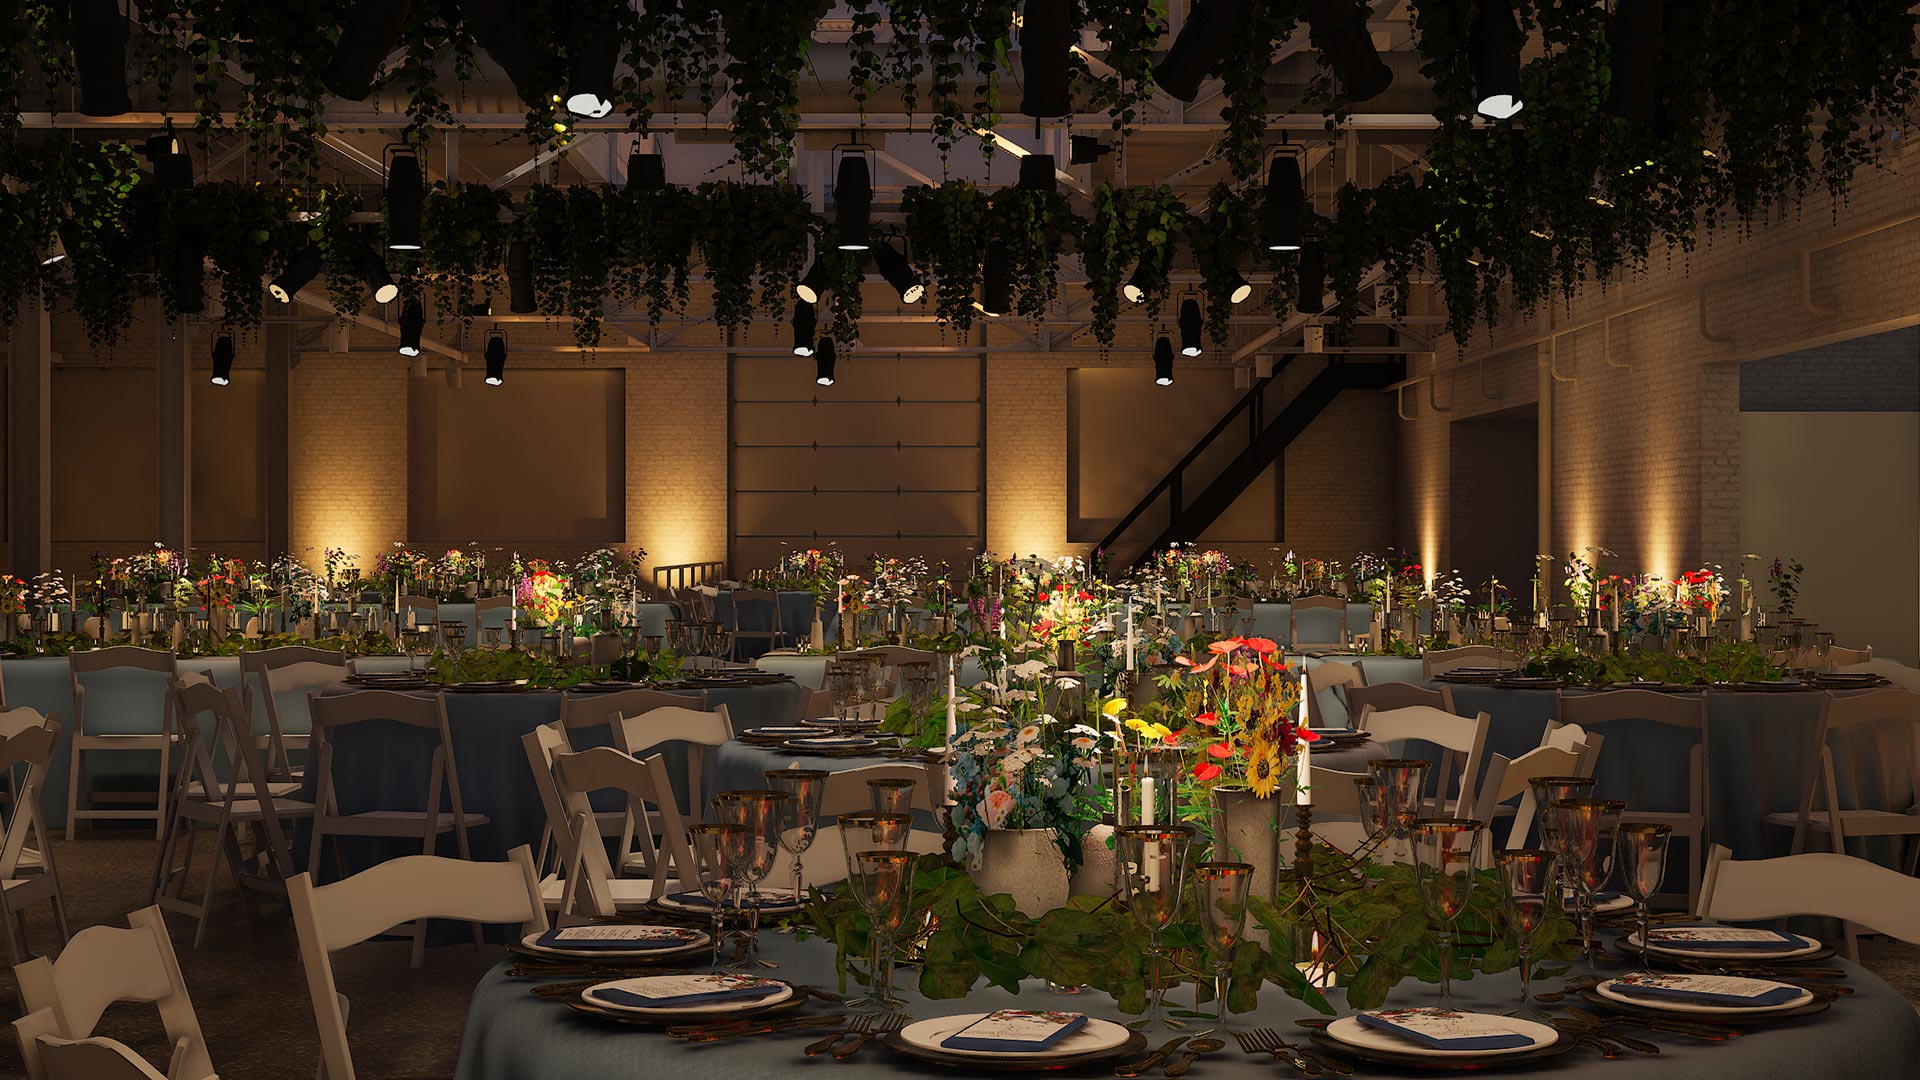 shot 2 evening The Madison - Cleveland's Event Reception Venue for Parties